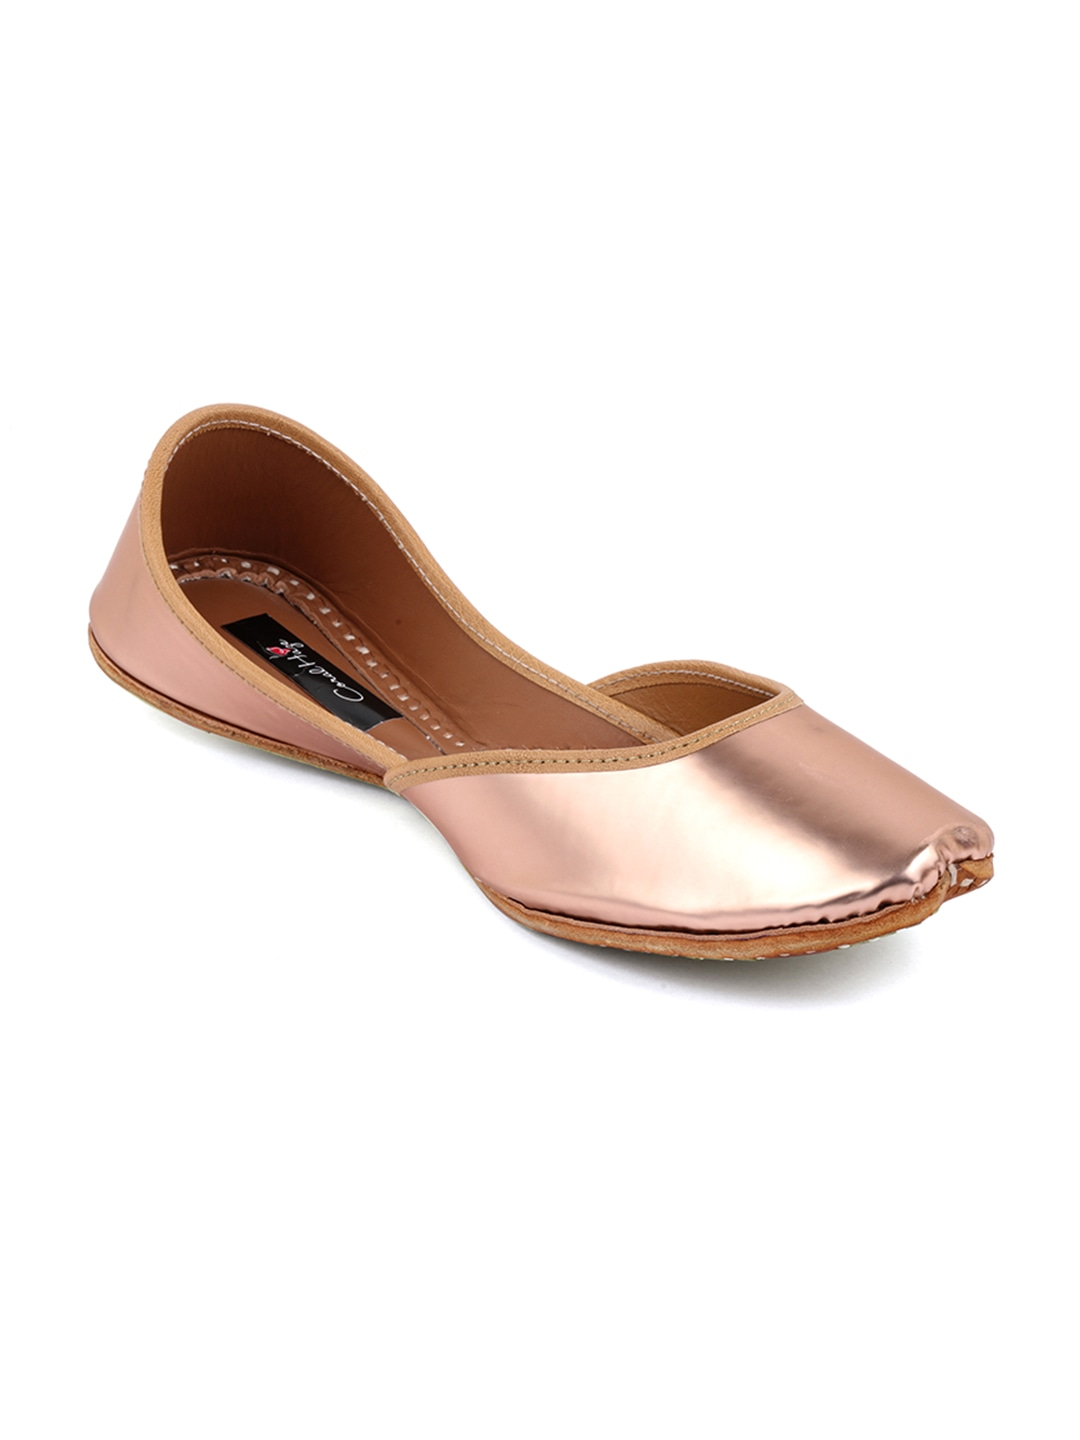 Gold-Toned Solid Leather Mojaris